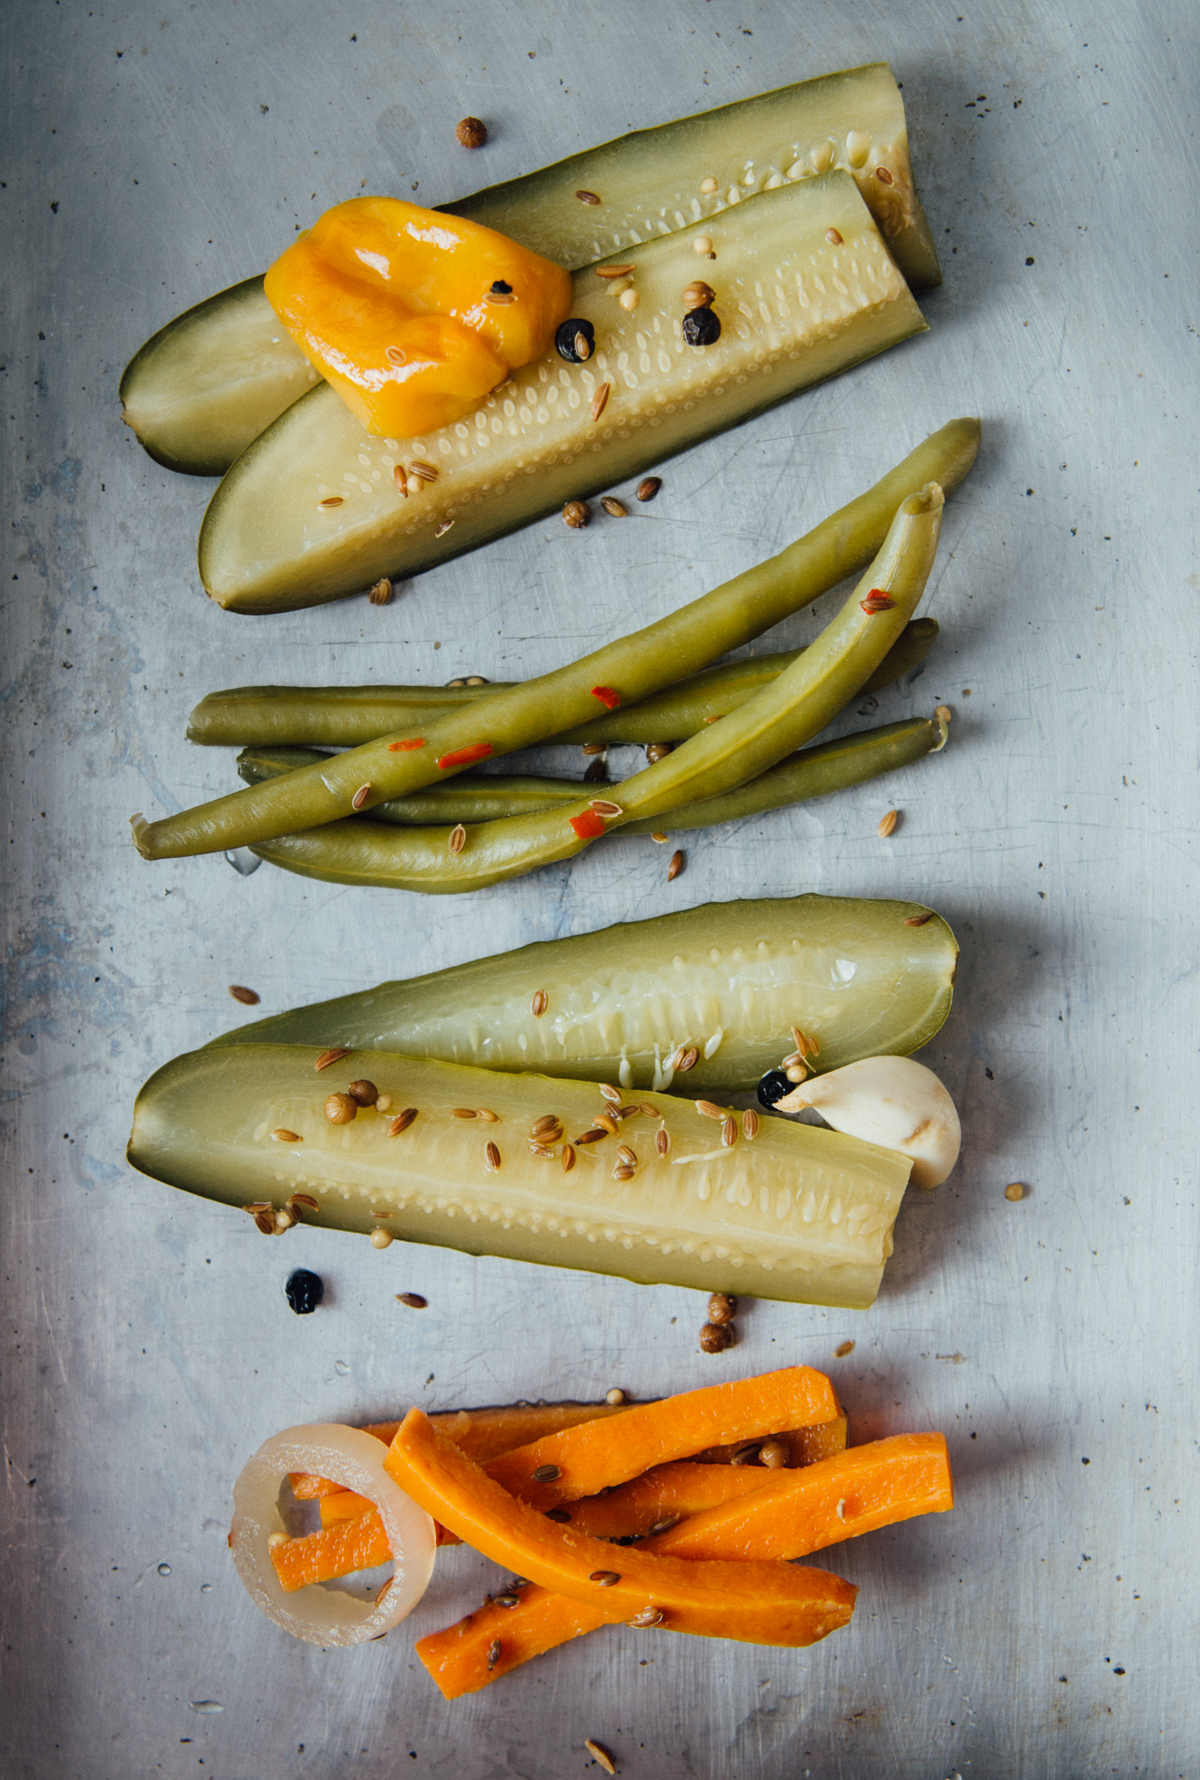 Four delicious varieties // (from top) Spicy Dill Pickles, Spice Market Beans, Garlic Dill Pickles, Dill Carrots